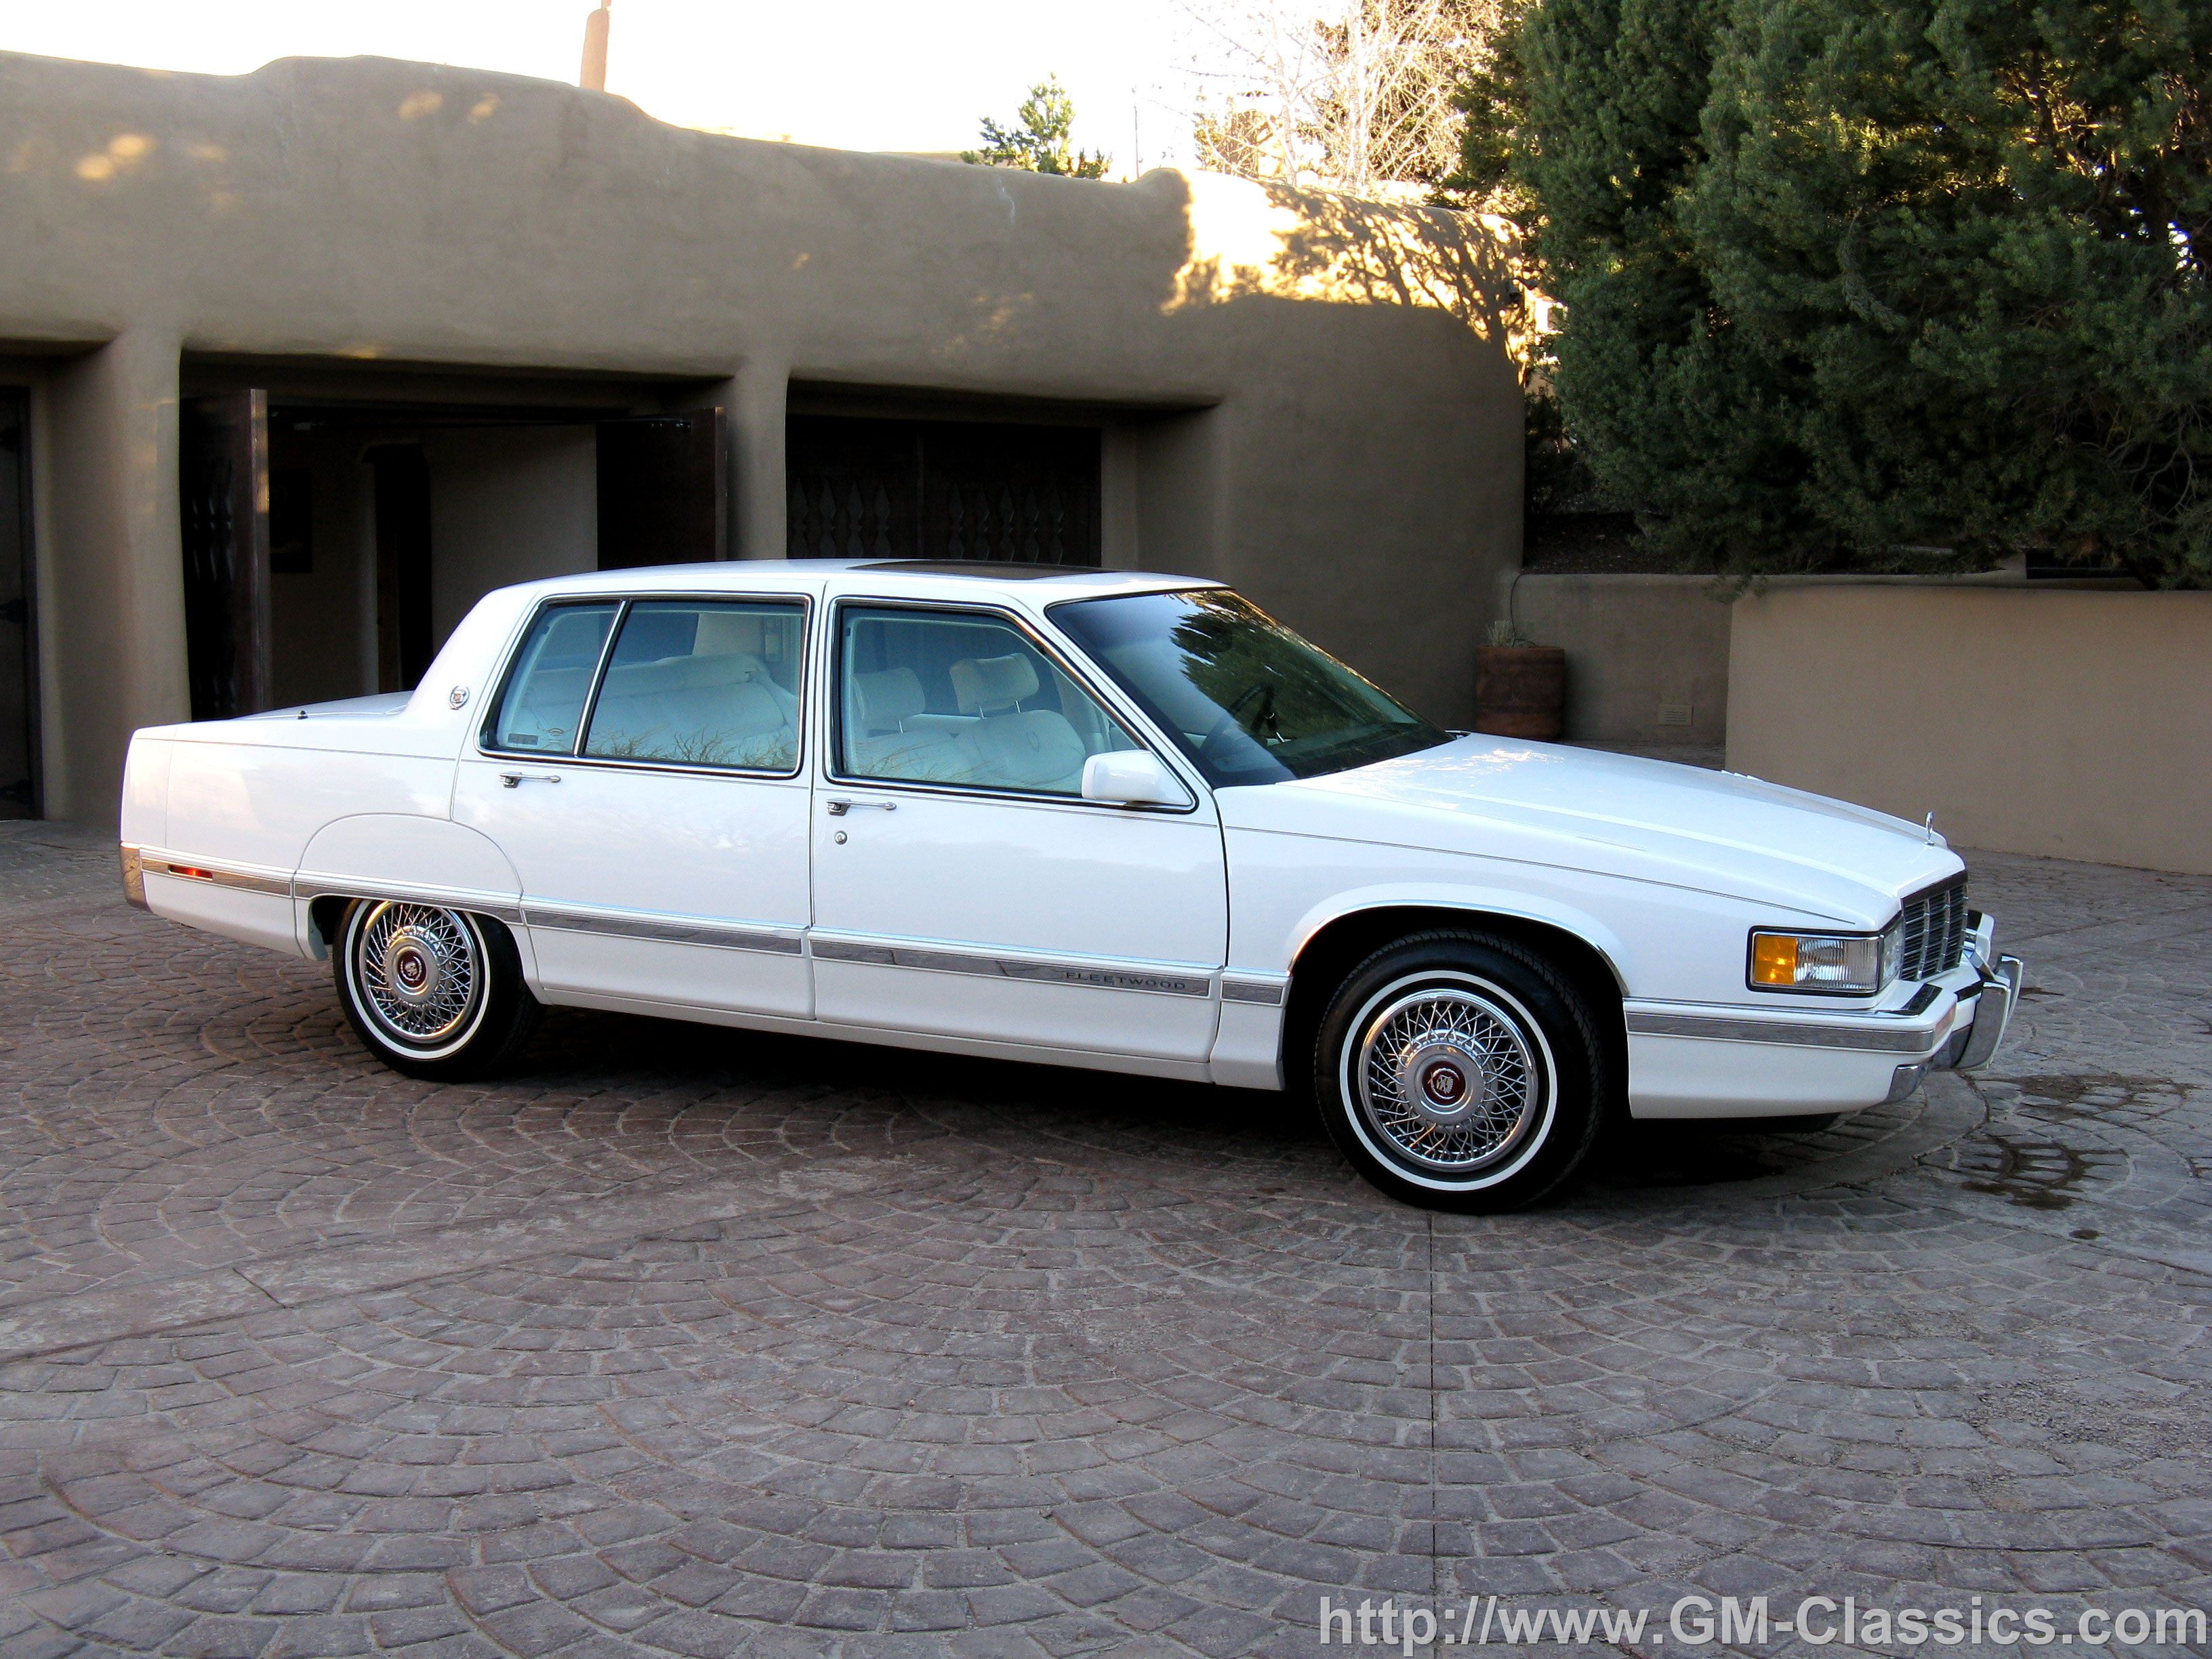 for fleetwood era cadillac end brougham autopolis the sale of an